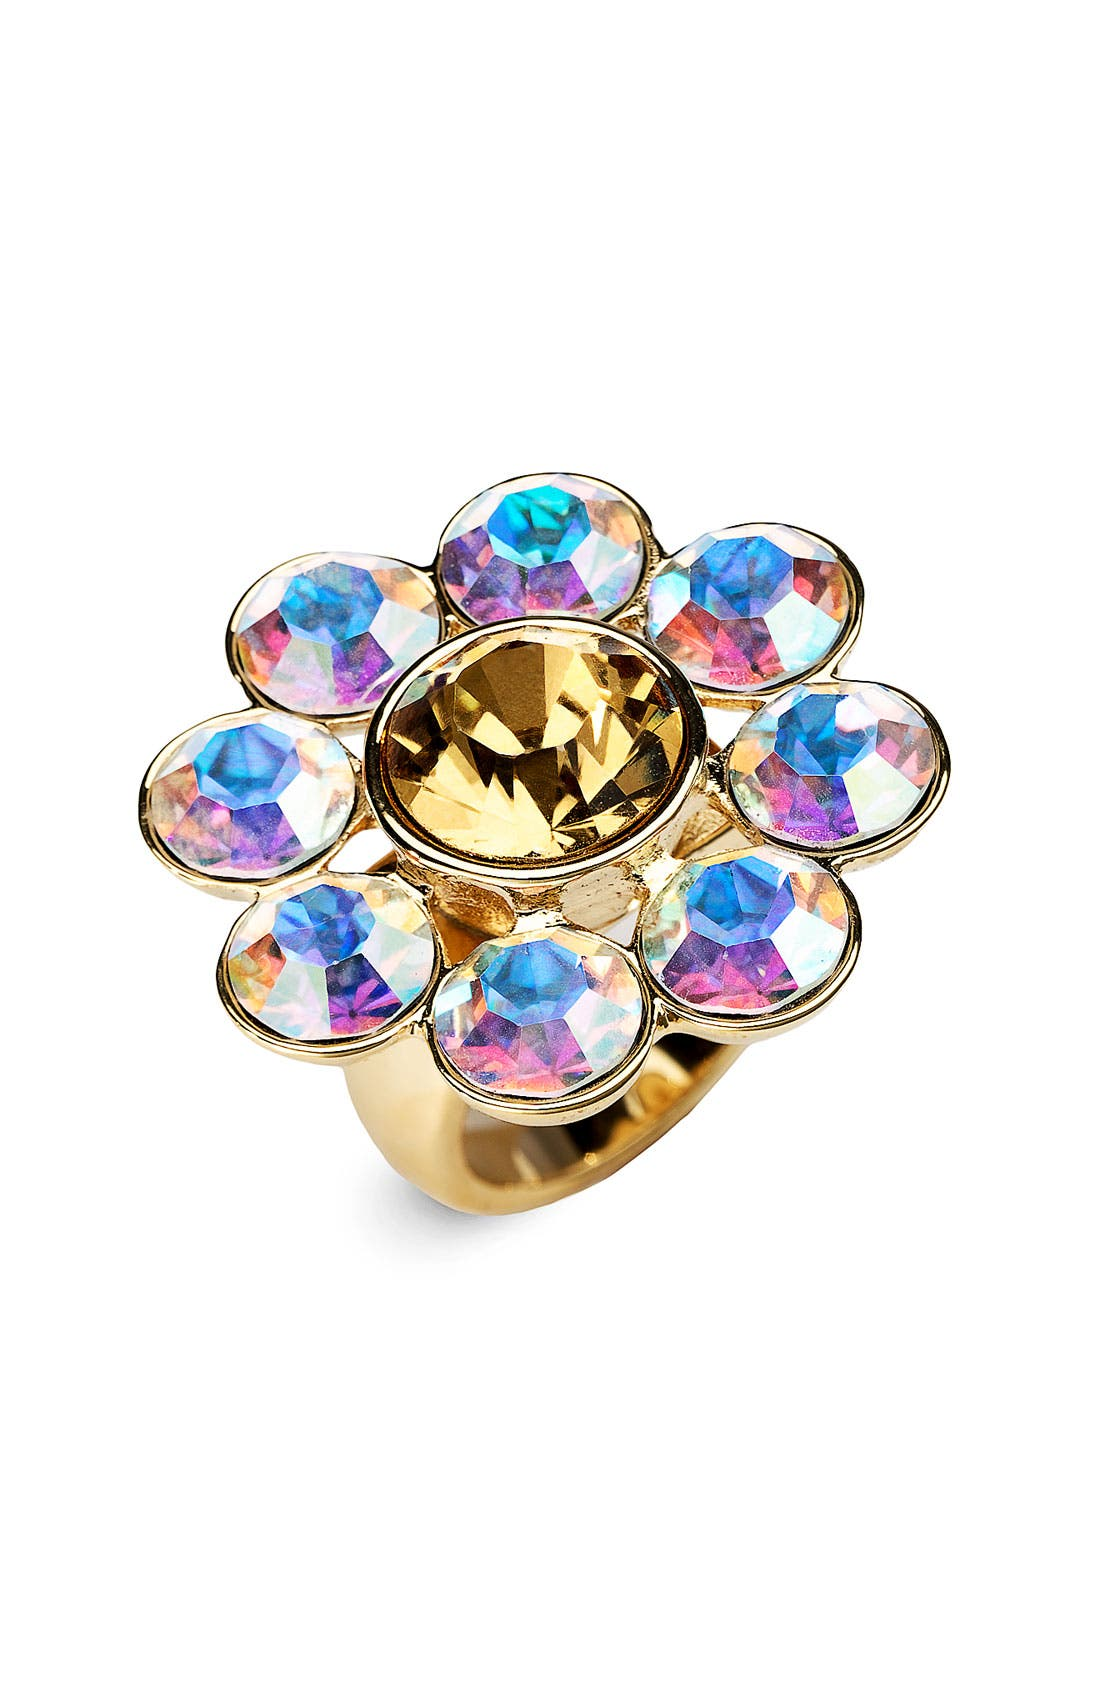 Main Image - kate spade new york 'trellis' crystal ring